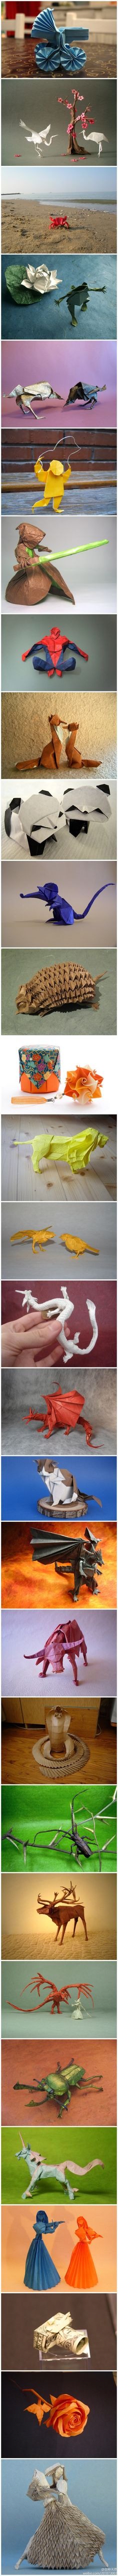 These remind me of the paper sculptures I had on my desk last year! Maybe I should make some more